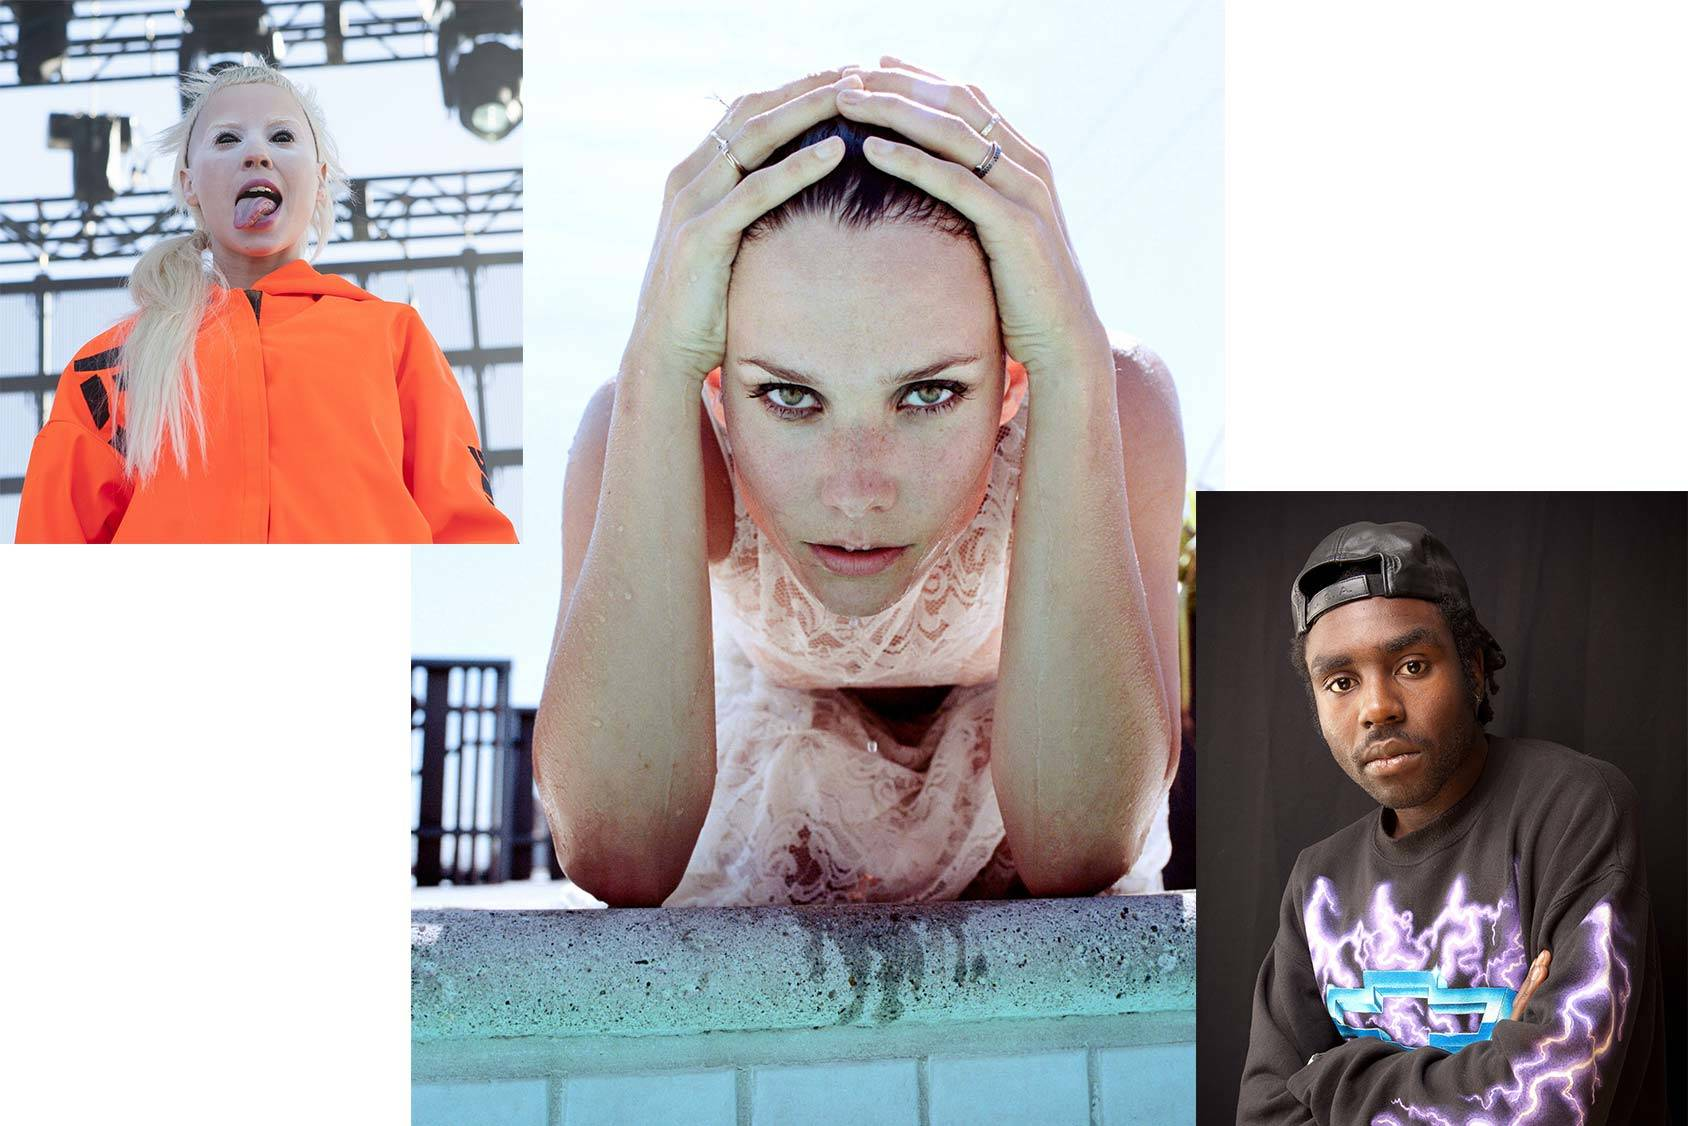 Nanna Øland Fabricius follows Yolandi Visser and Dev Hynes, All Over Press/Justin Tyler Close.